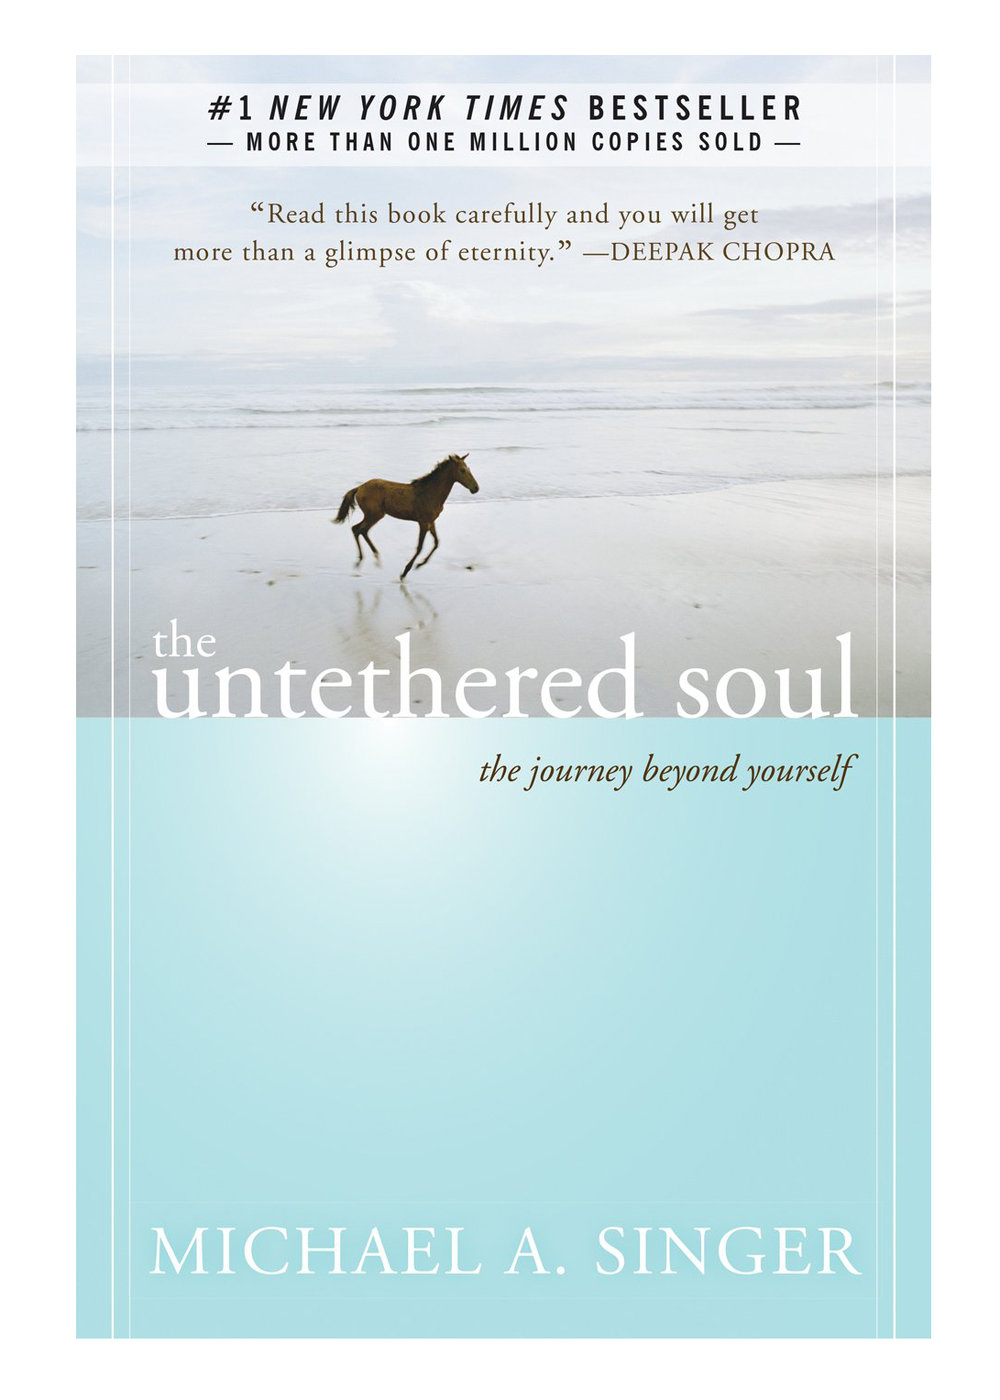 LET YOUR SOUL LOOSE - I have heard so many amazing things about this book from  MULTIPLE sources and FINALLY got around to reading it. There is no wonder why irt's a bestseller, as you feel good just opening it and deciding to dive in. An inward journey to open up your soul and the clarity for bright and blissful future within.